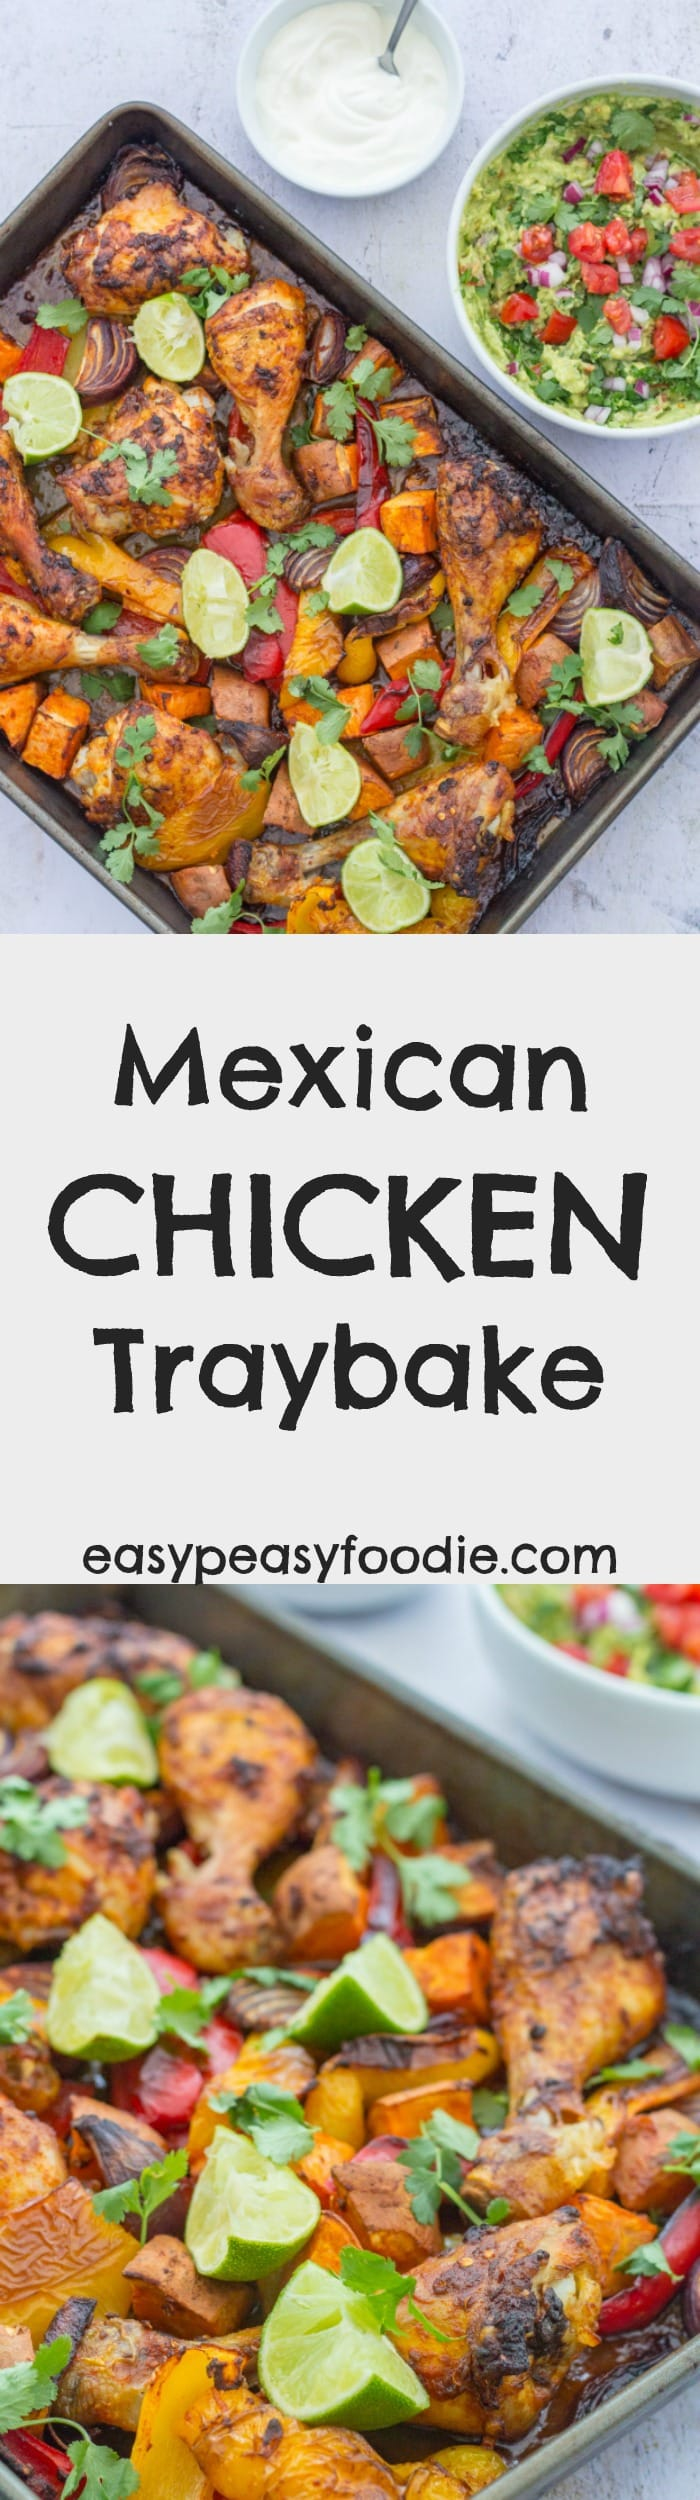 Fabulous crispy skinned roast chicken thighs and legs coated in a delicious Mexican style marinade together with roasted sweet potatoes, peppers and onions, this Mexican Chicken Traybake is so unbelievably simple to make but utterly delicious. Prepared in just 10 minutes and left to do its thing in the oven this easy one pan chicken recipe is ideal for busy evenings! #mexican #chicken #traybake #sweetpotatoes #onepan #sheetpan #easydinners #midweekmeals #easypeasyfoodie